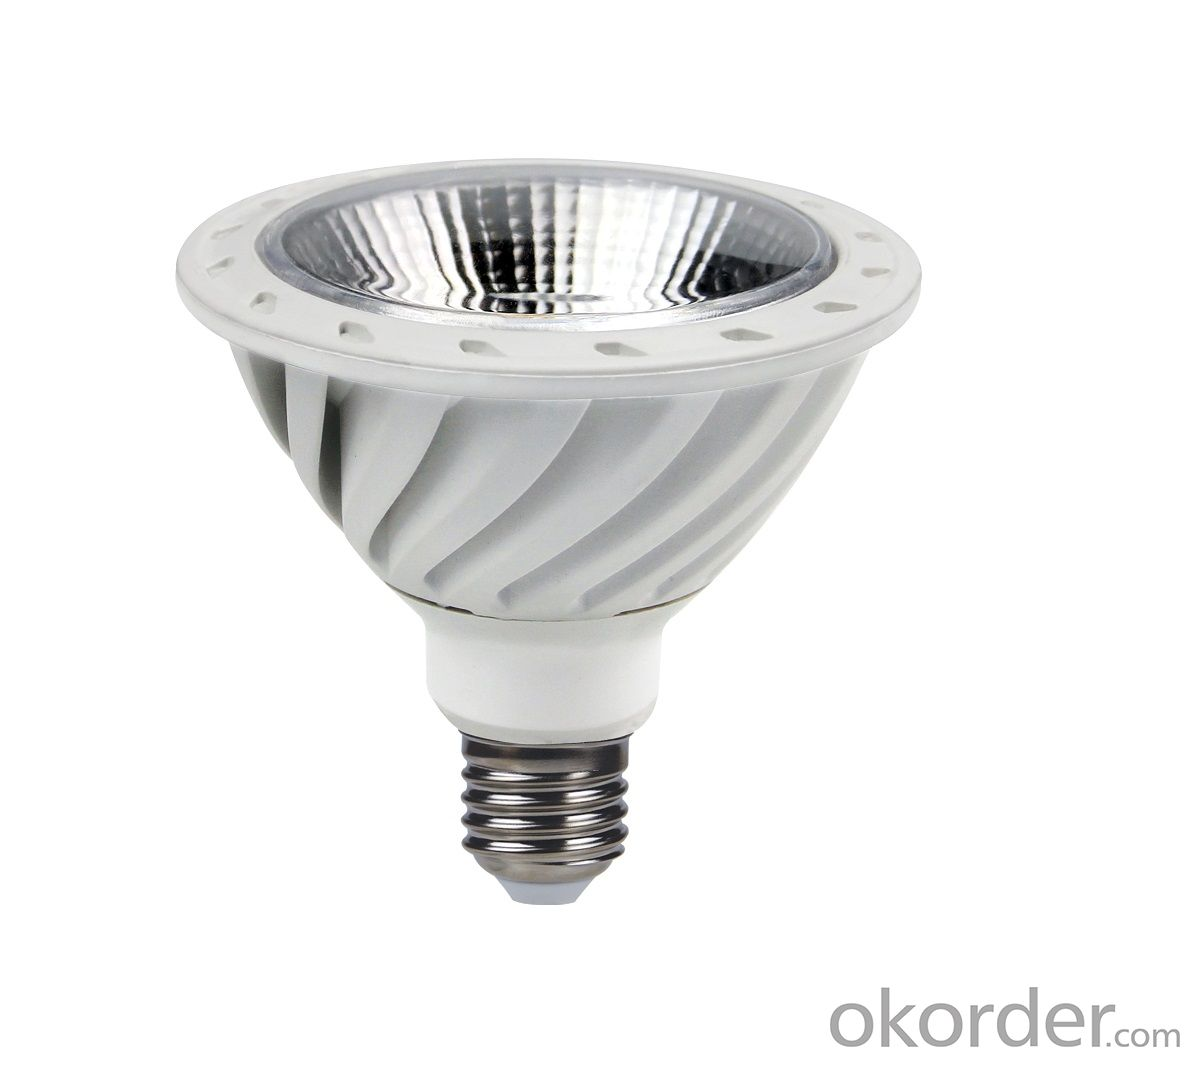 LED PAR38  LAMP WITH BEST PERFORMANCE  THREE YEARS WARRANTY